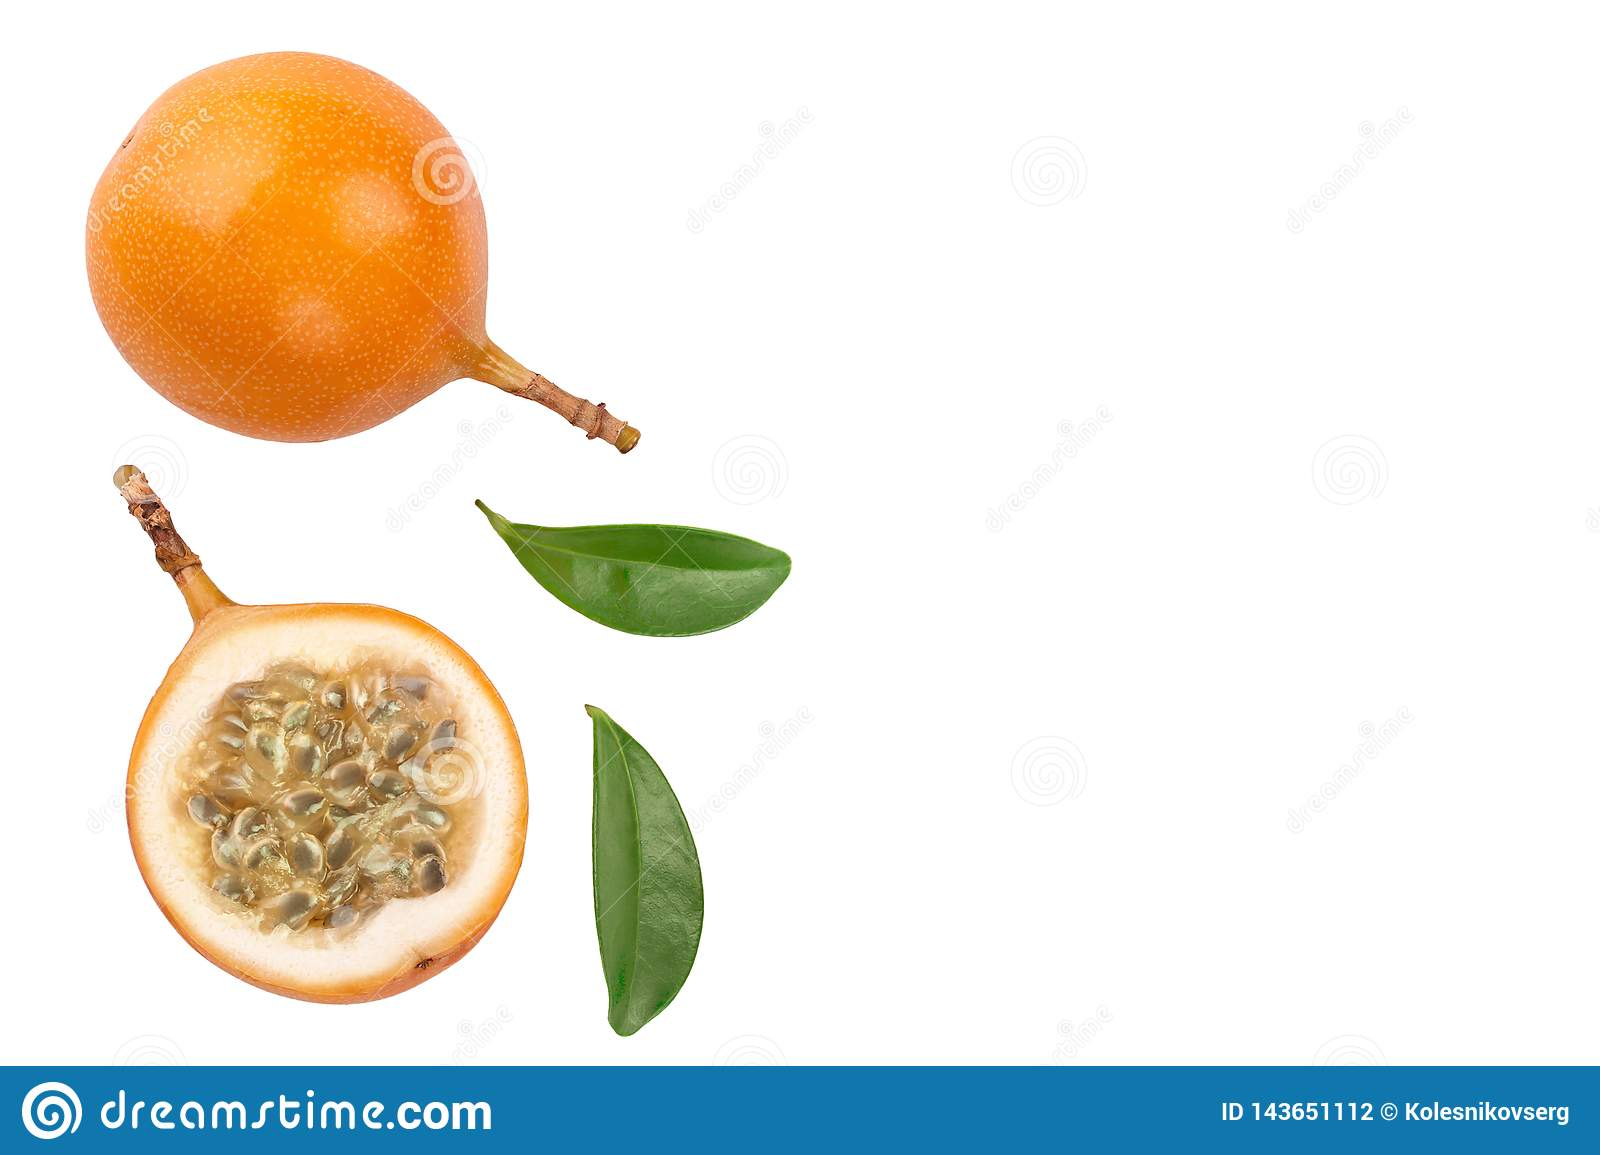 Granadilla or yellow passion fruit with leaf isolated on white background with copy space for your text. Top view. Flat